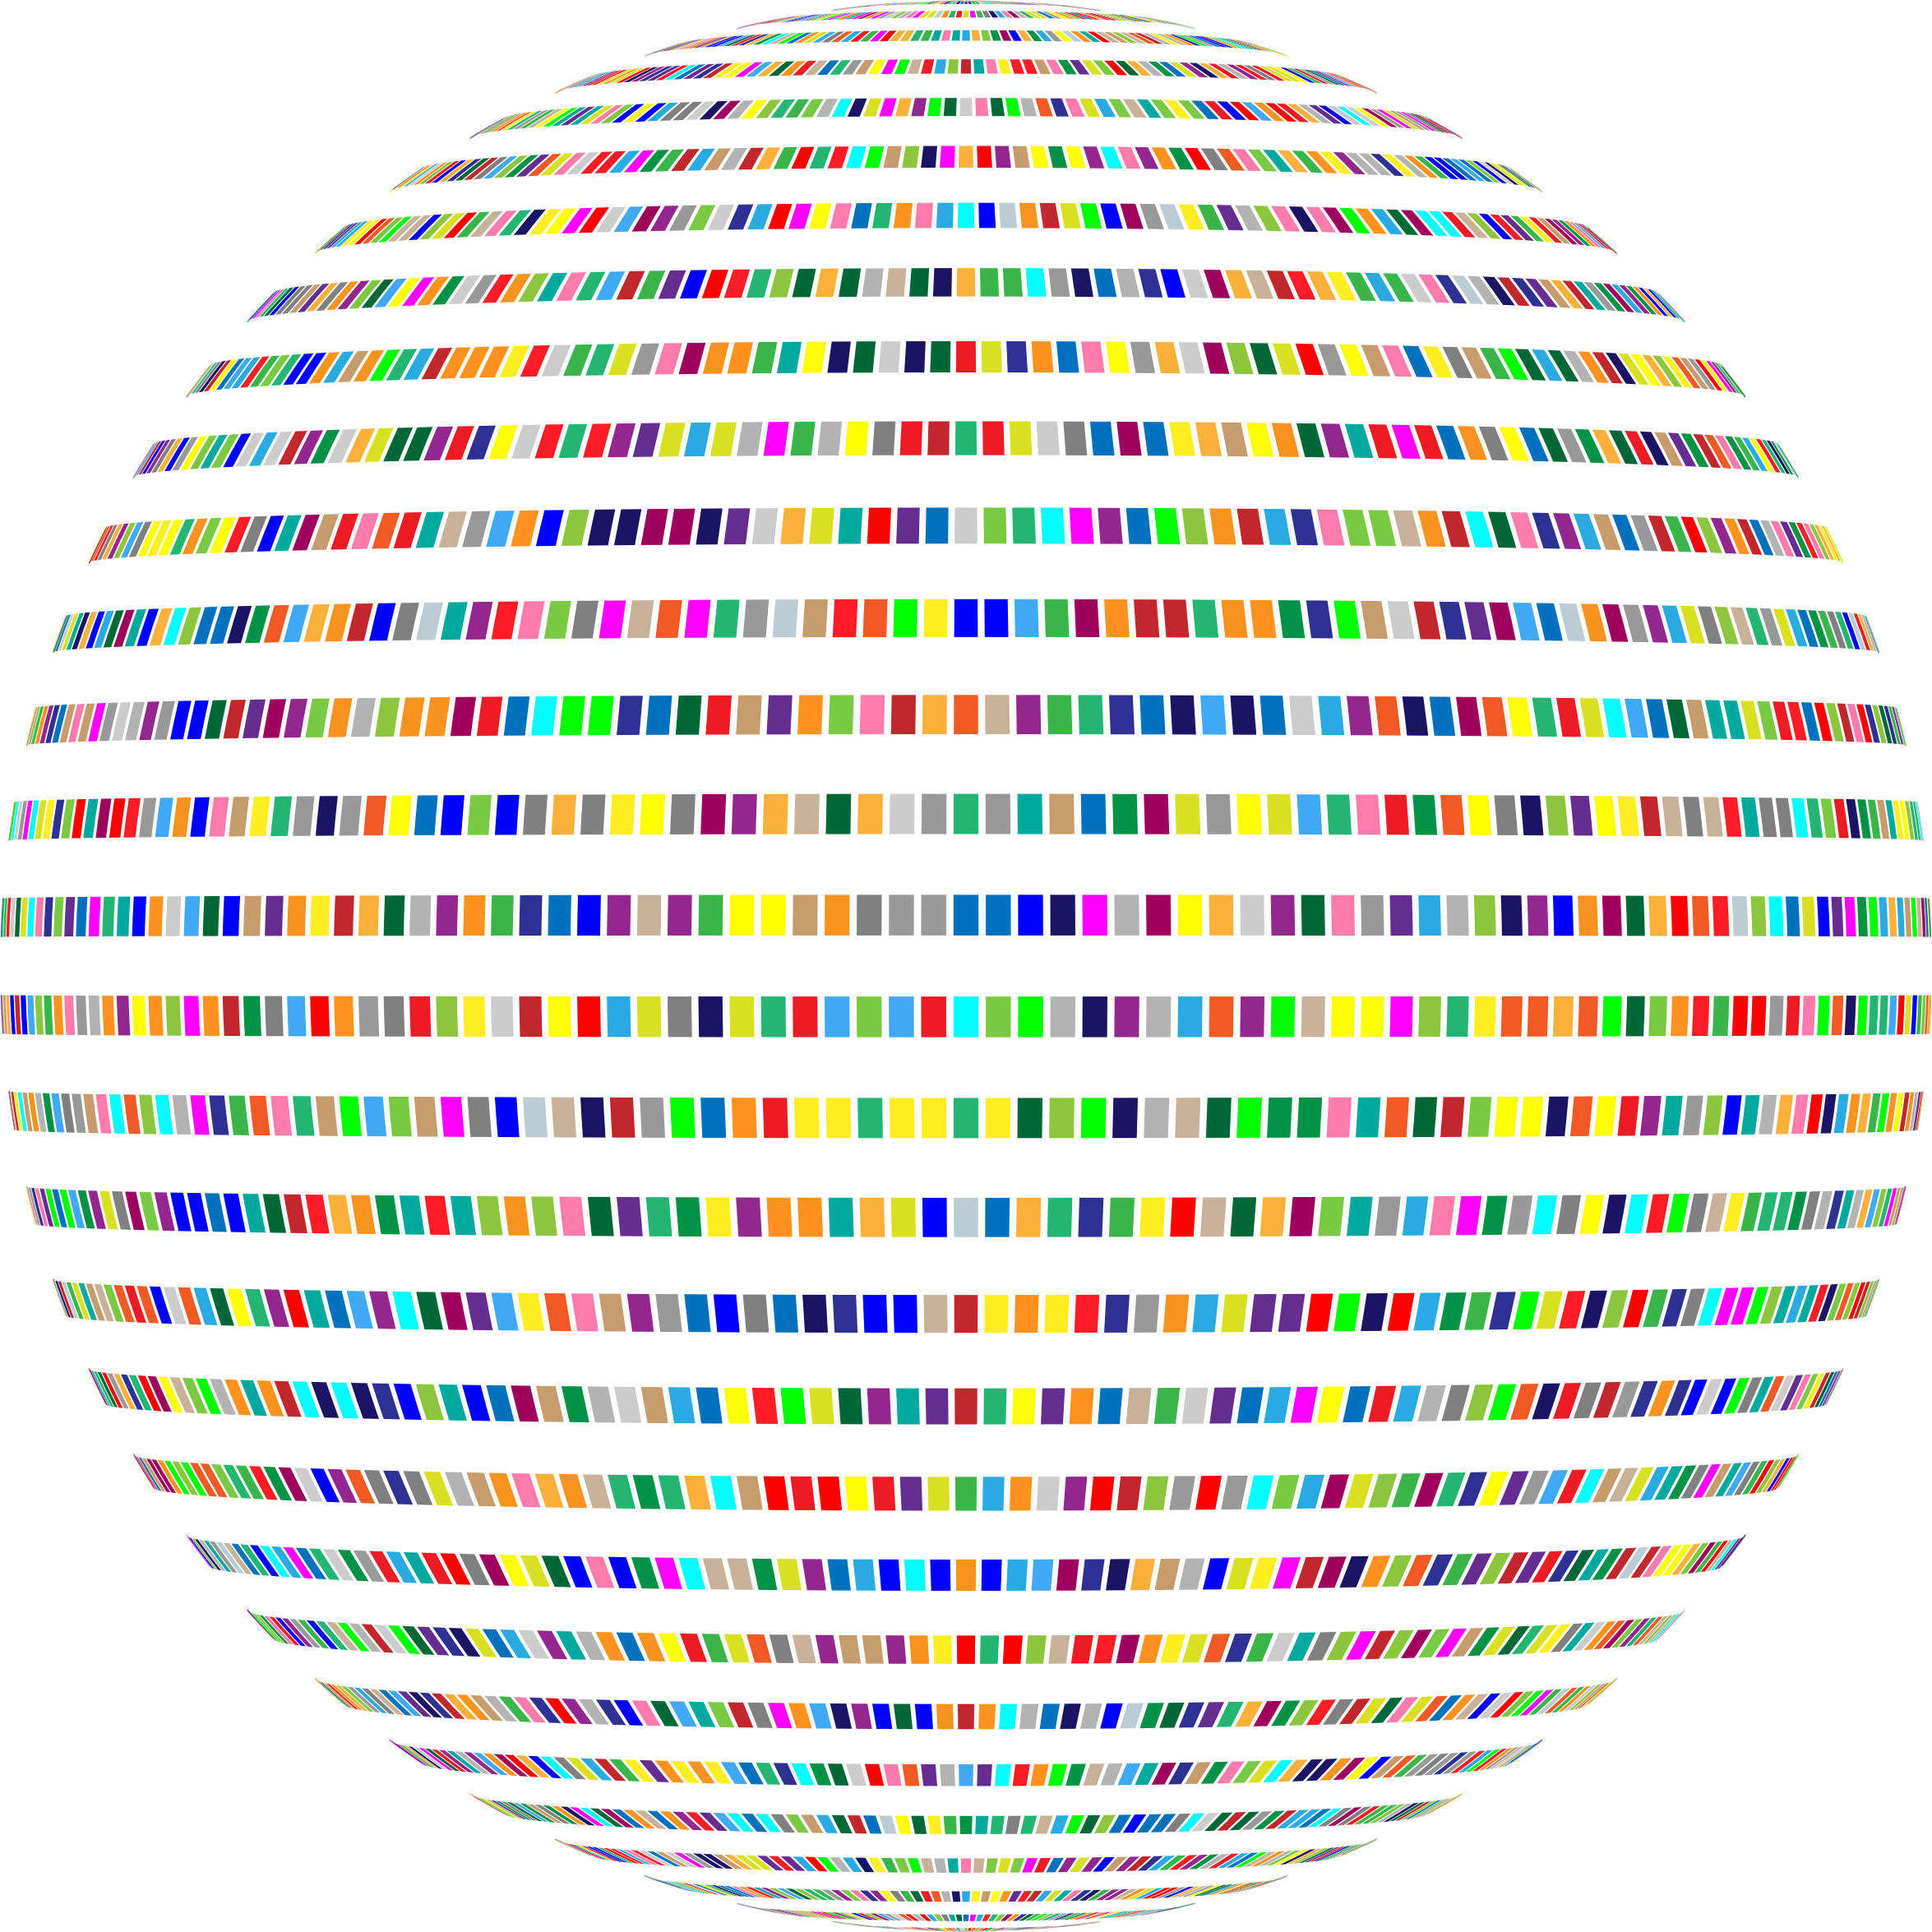 Colorful Rectangles Sphere by GDJ